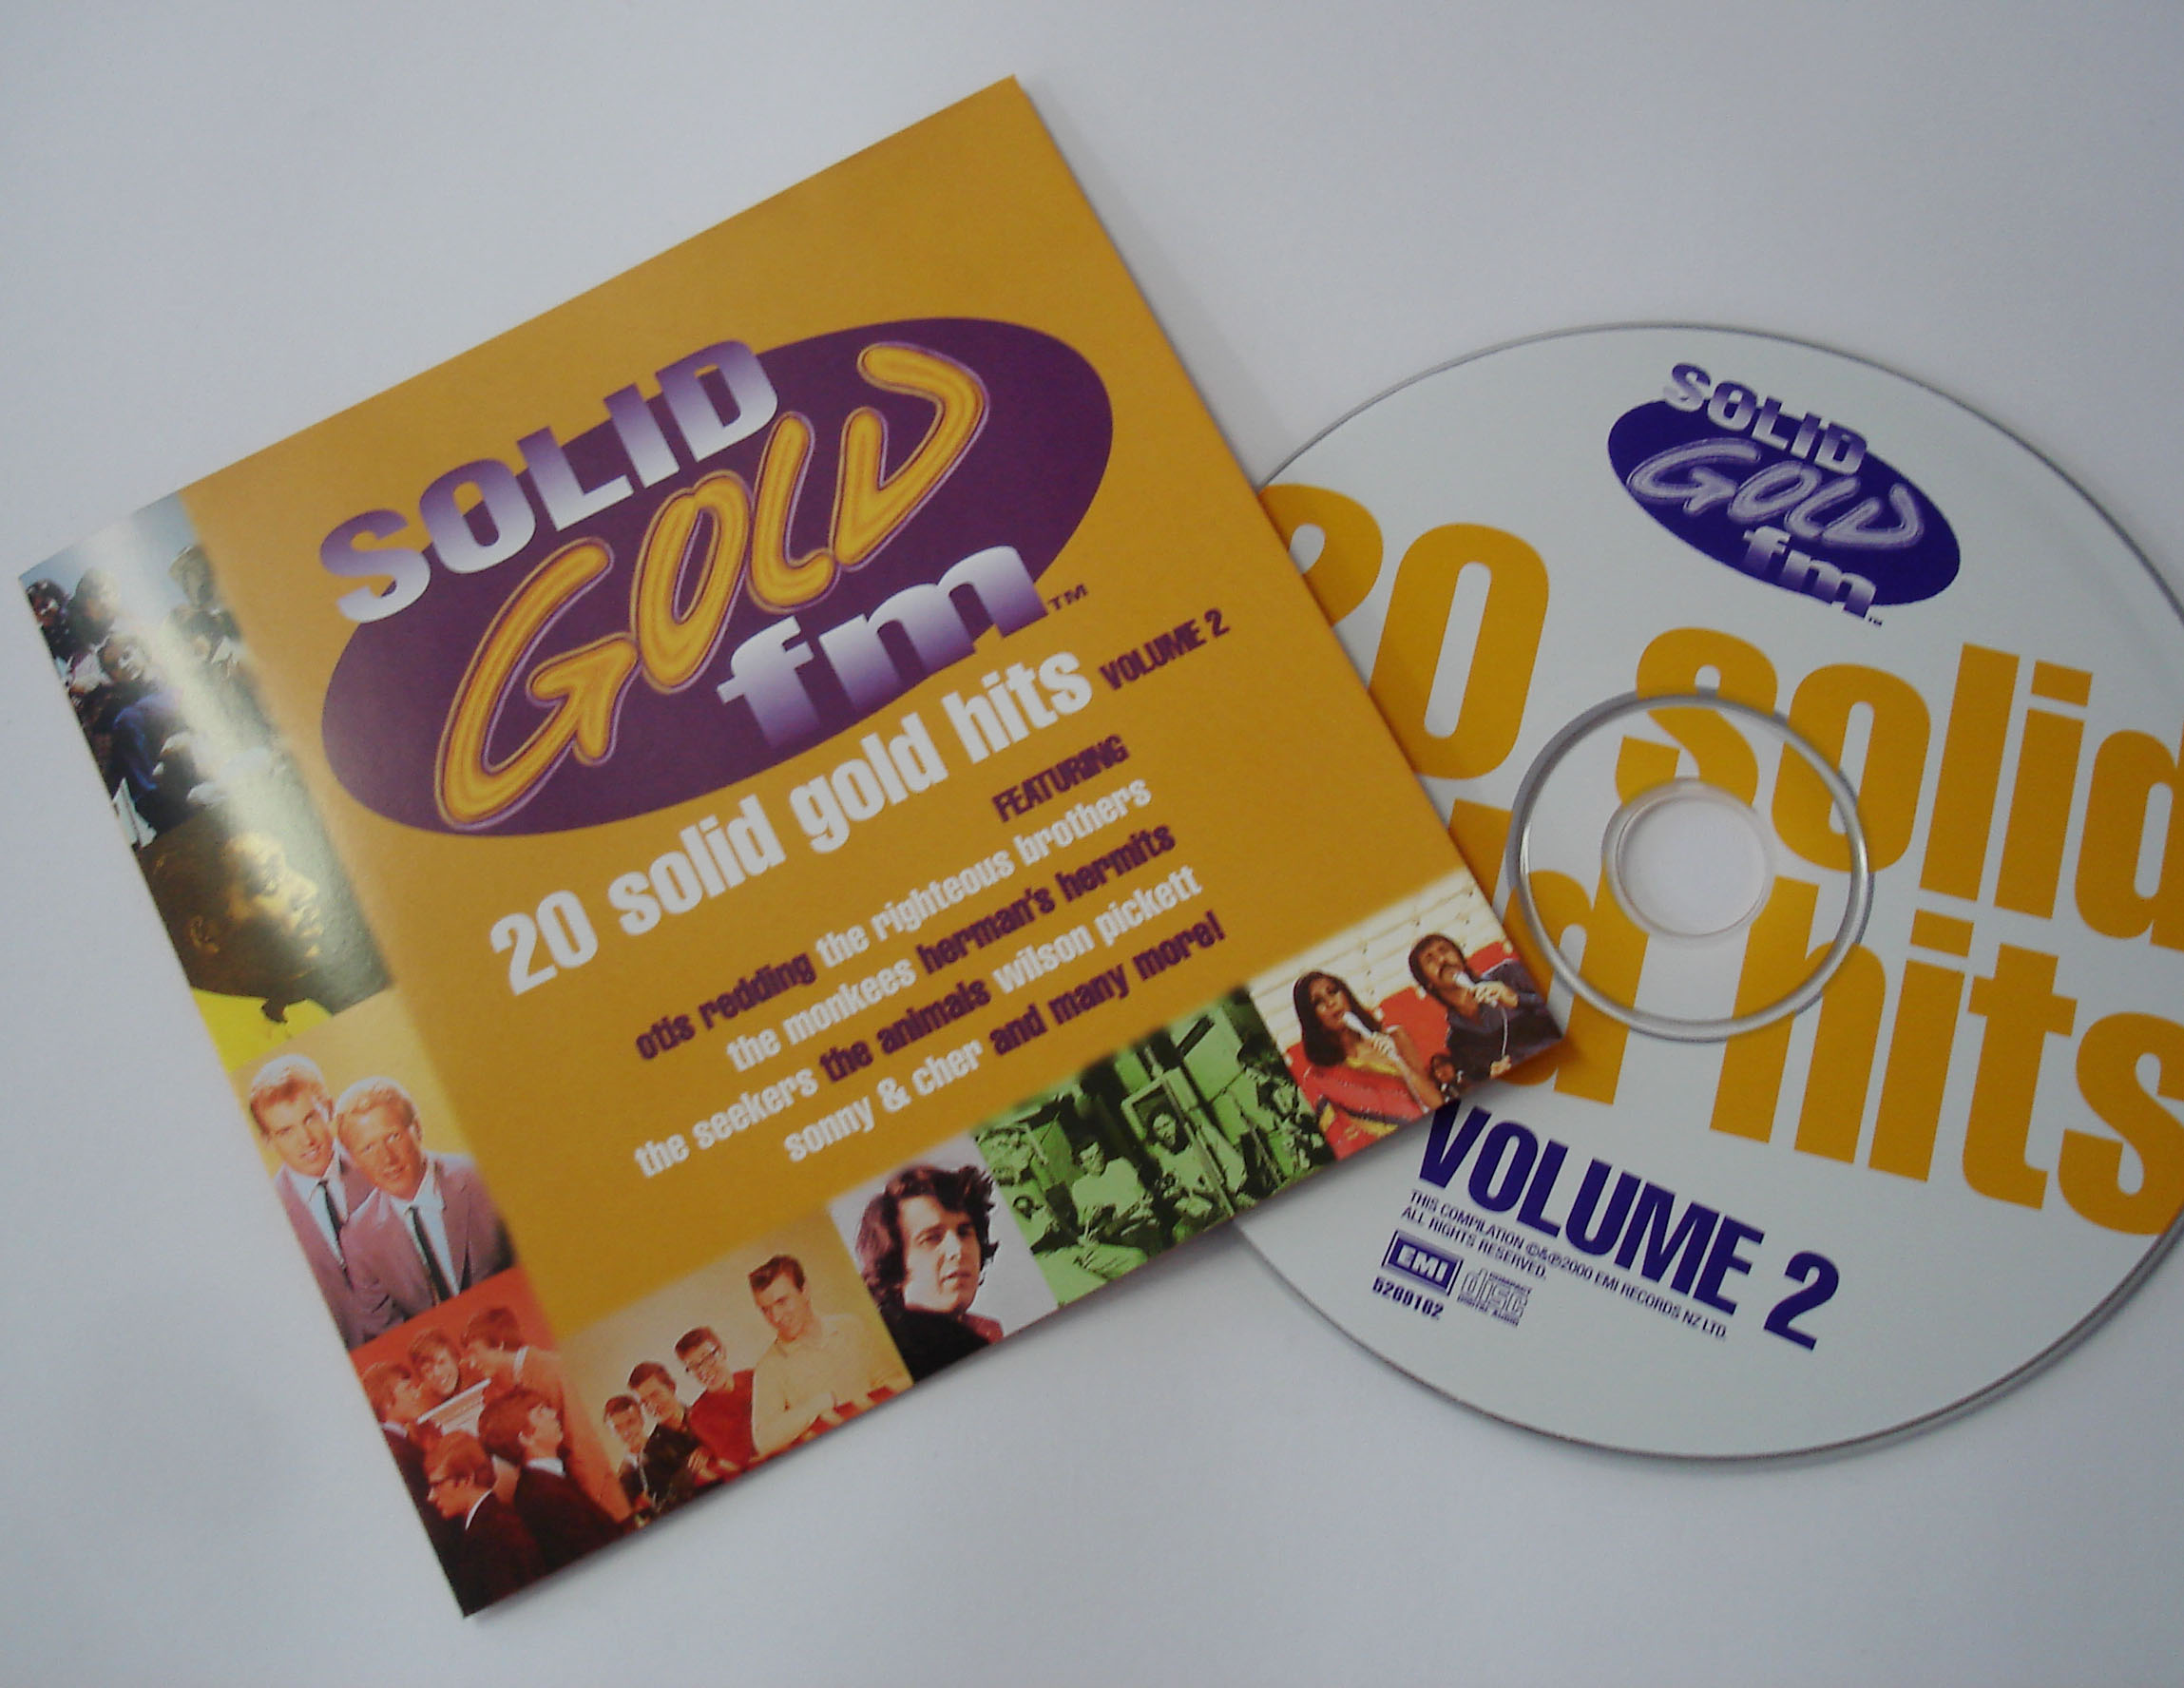 SOLID GOLD FM - 20 SOLID GOLD HITS VOLUME 2